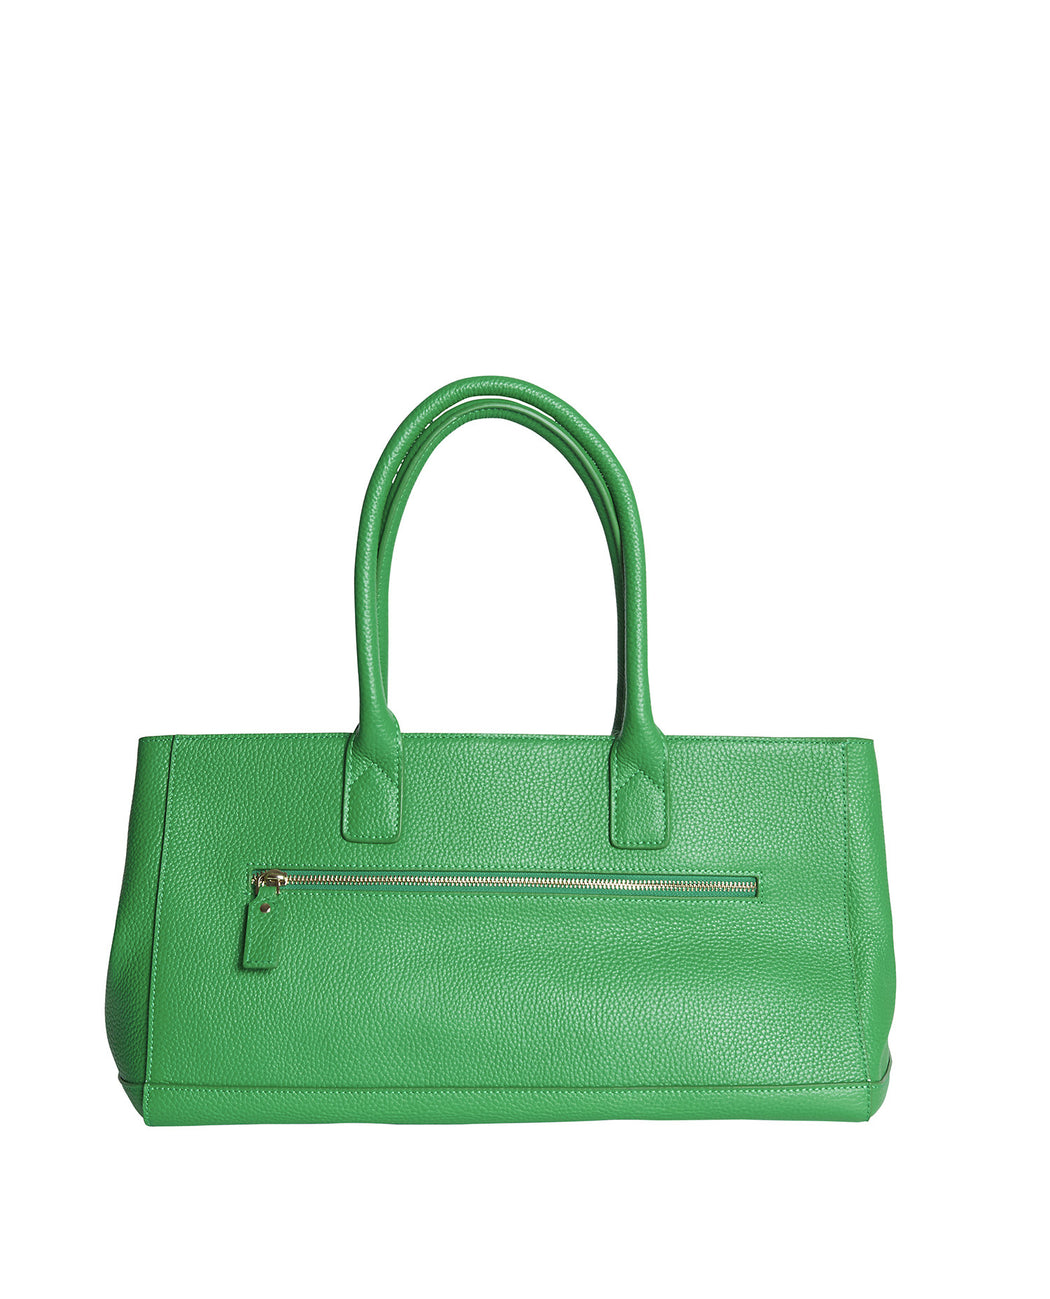 WORLD Christchurch Handbag Green